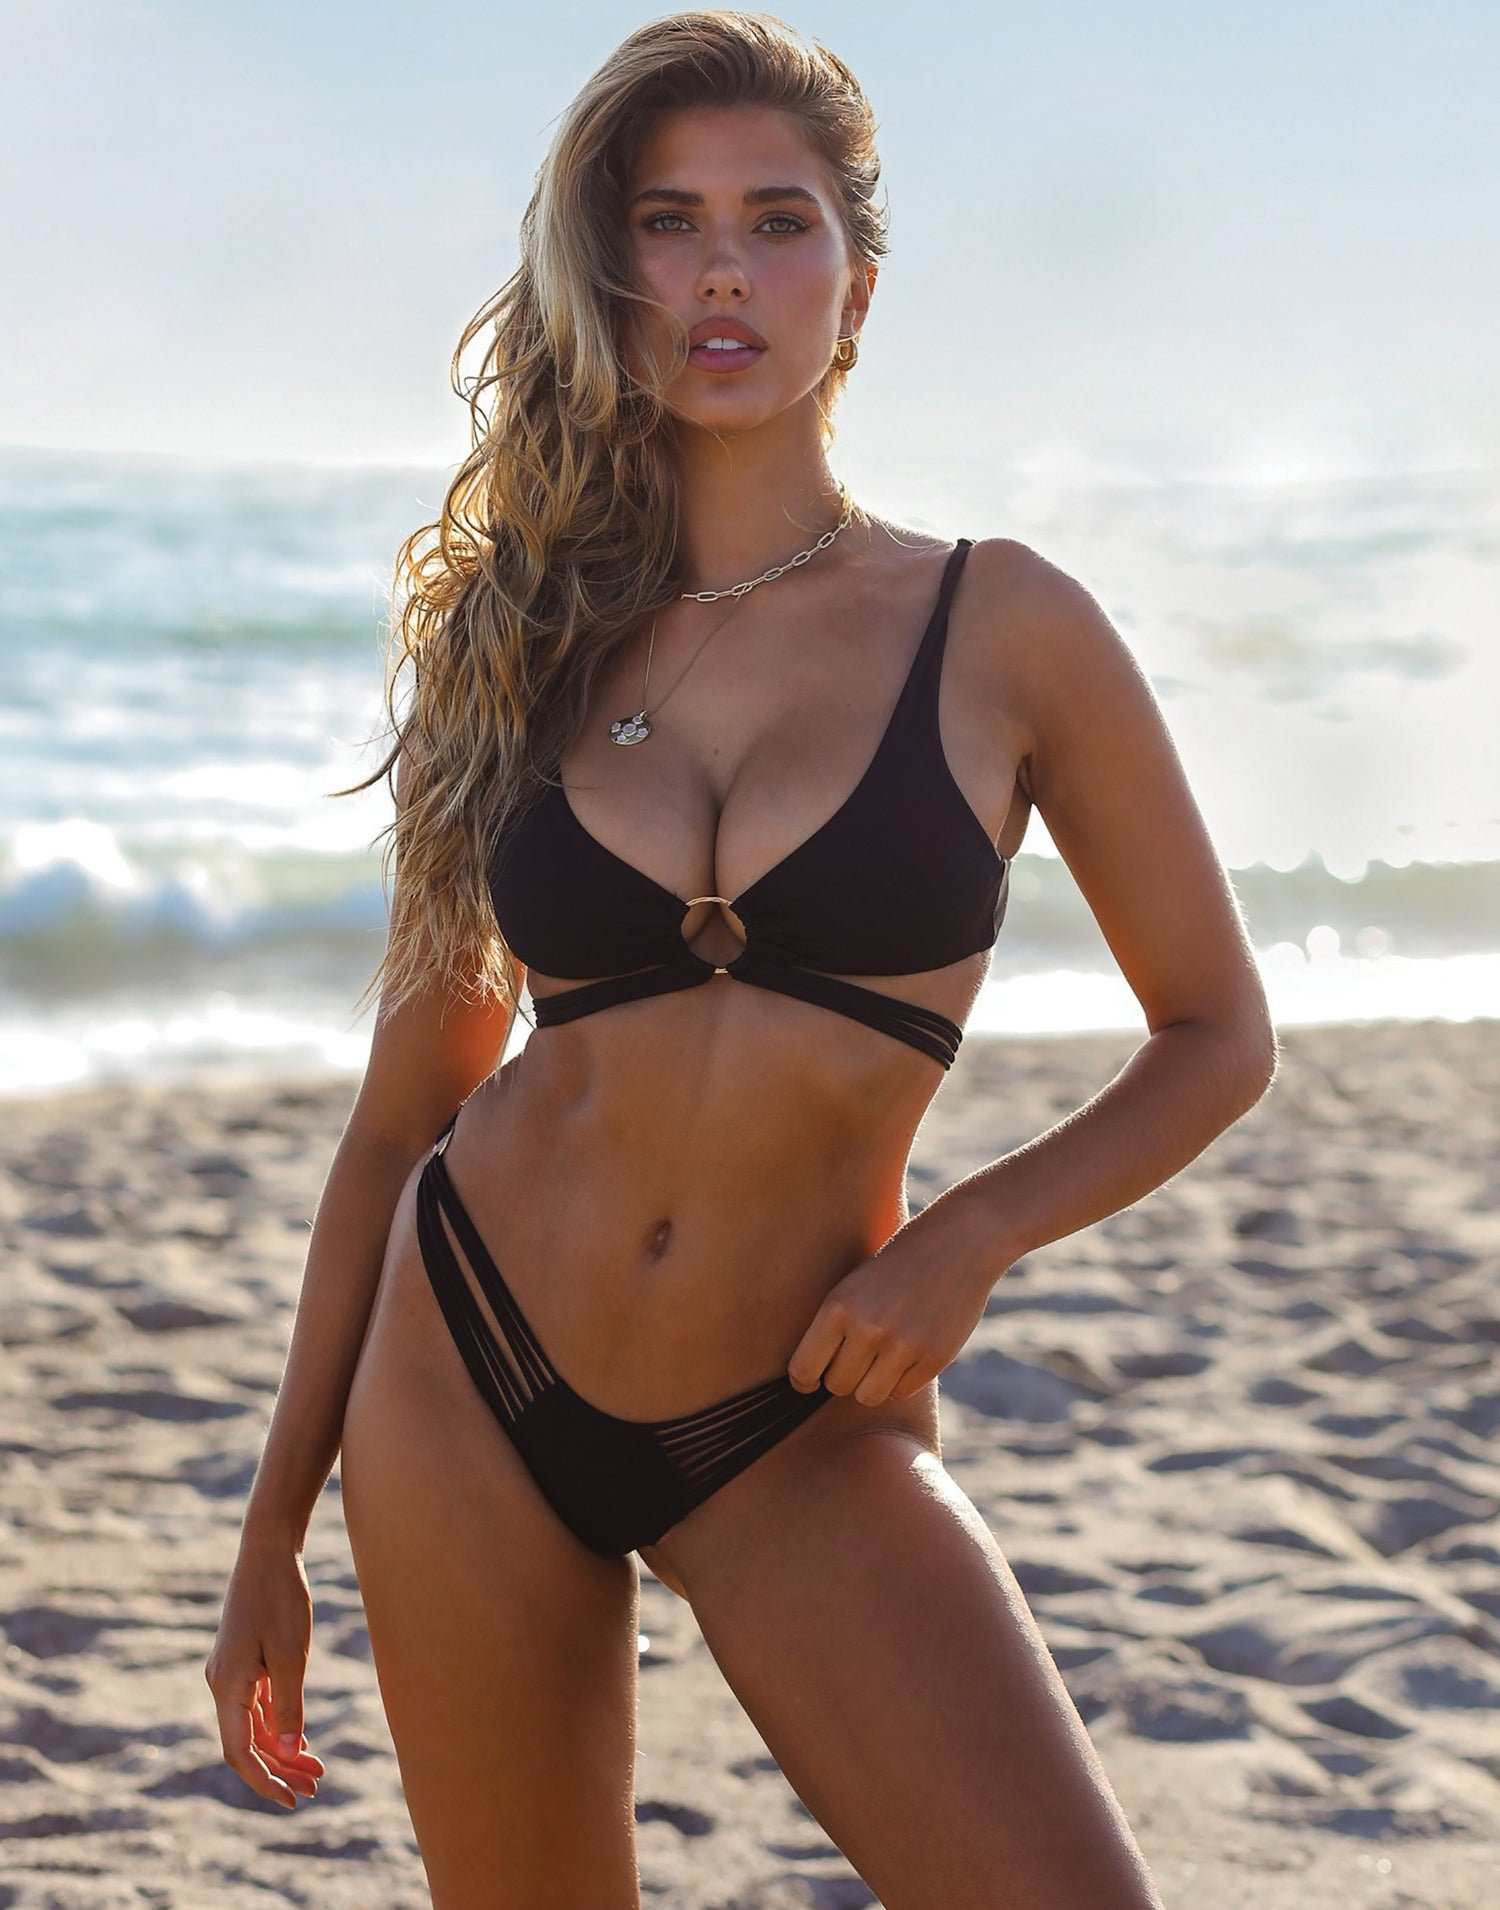 Indy Micro Tango Bikini Bottom in Black with Strappy Details - Alternate Front View